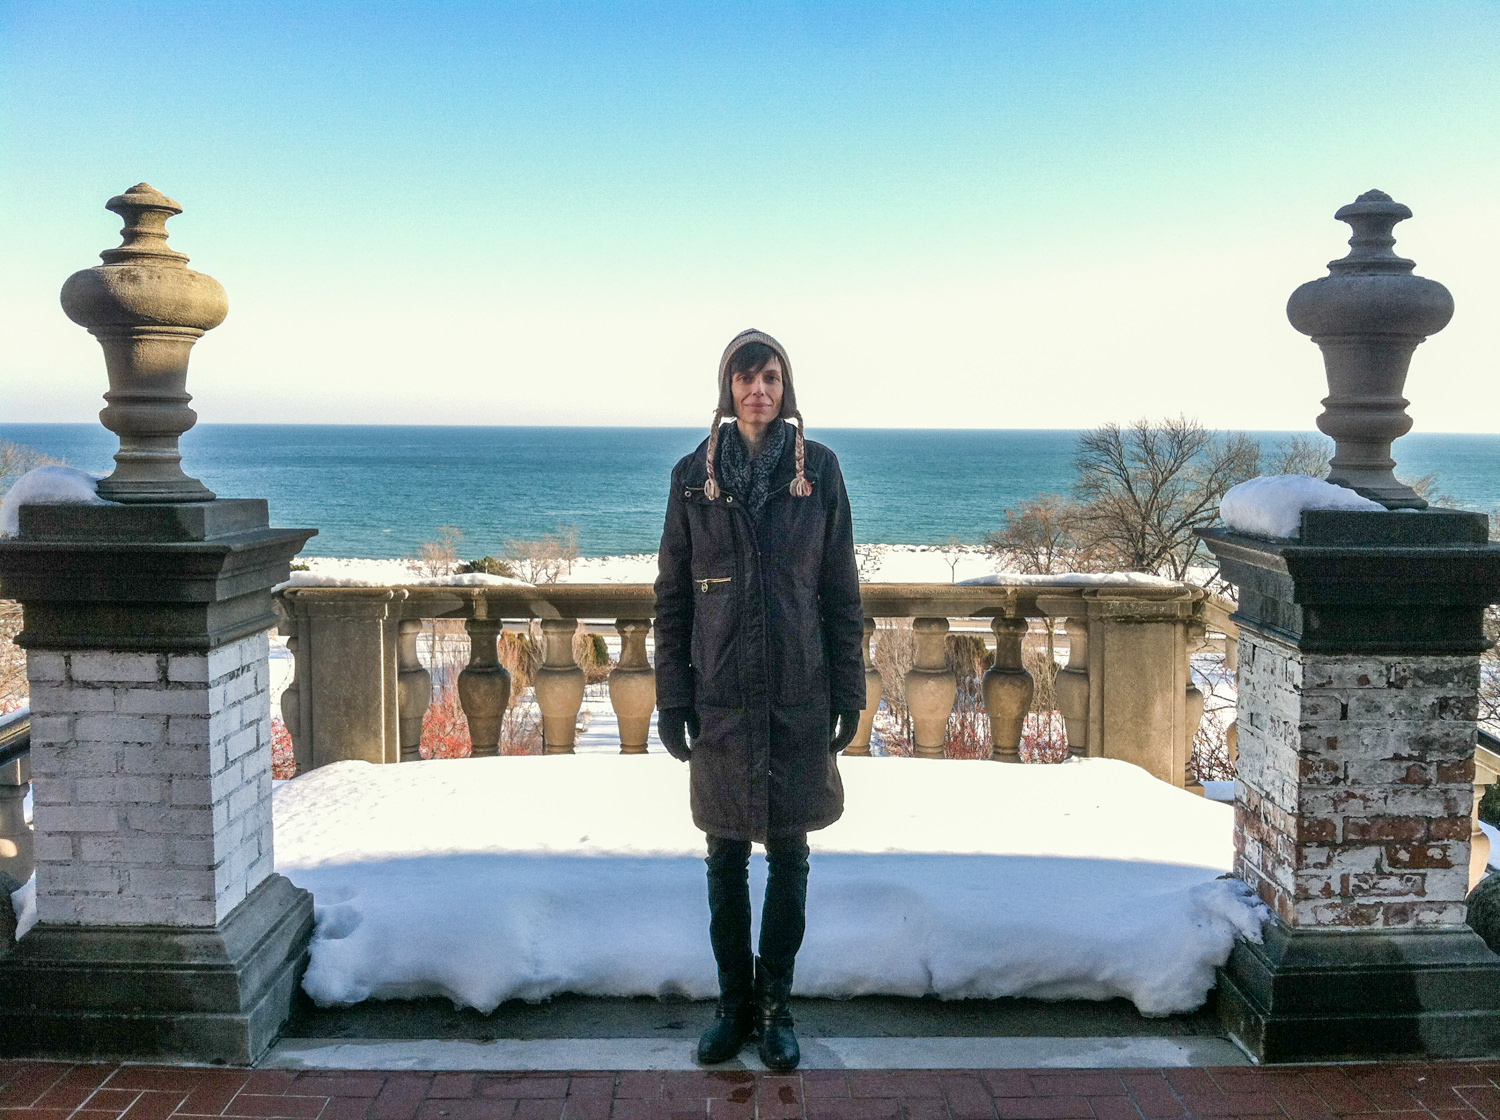 Catherine Friesen, Milwaukee, December 2013. This is the last photo I took of her, on the site of her last role, Hamlet.